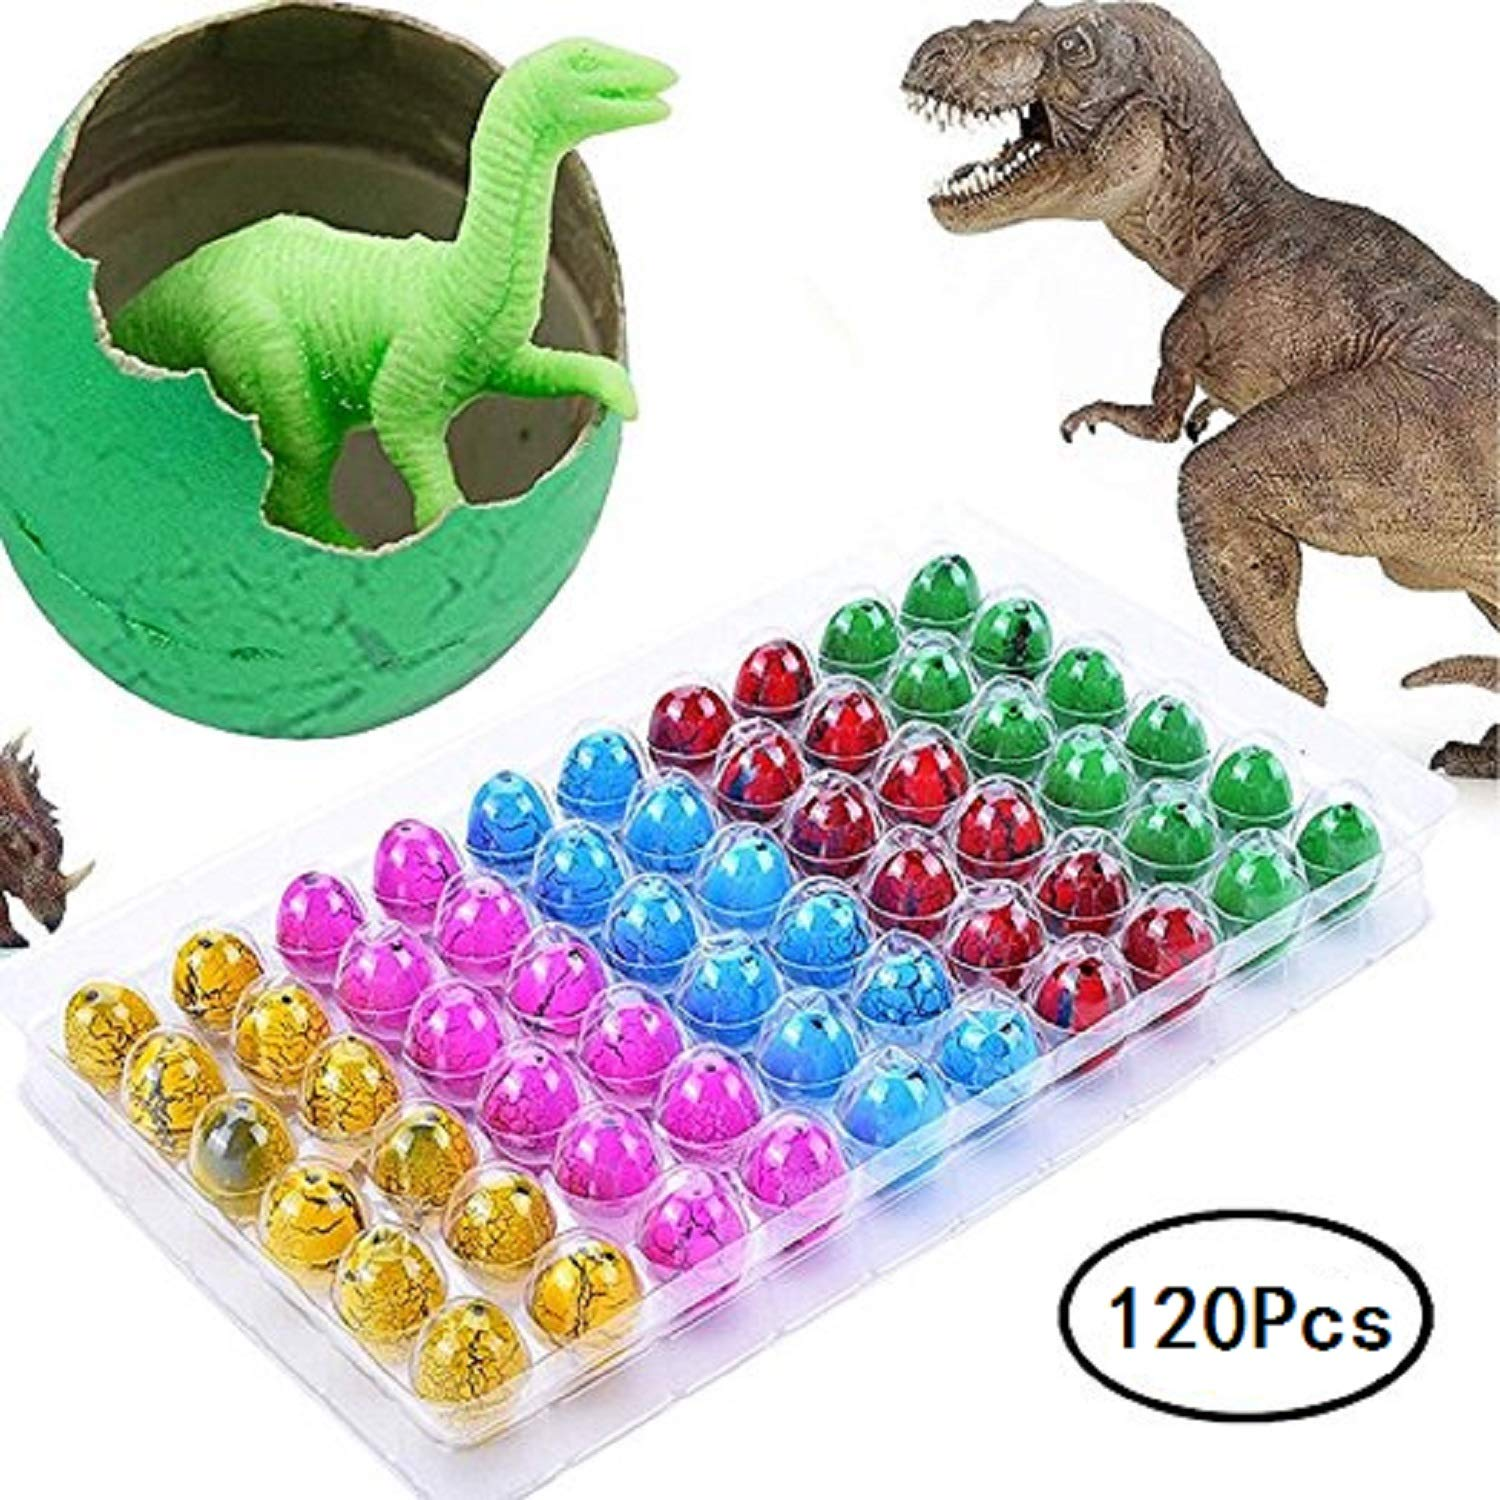 YanXi7 120 Pcs Novelty Hatching Dinosaur Toys , Hatch and Grow Easter Dinosaur Eggs That Hatch in Water for Kids Party Supplies by YanXi7